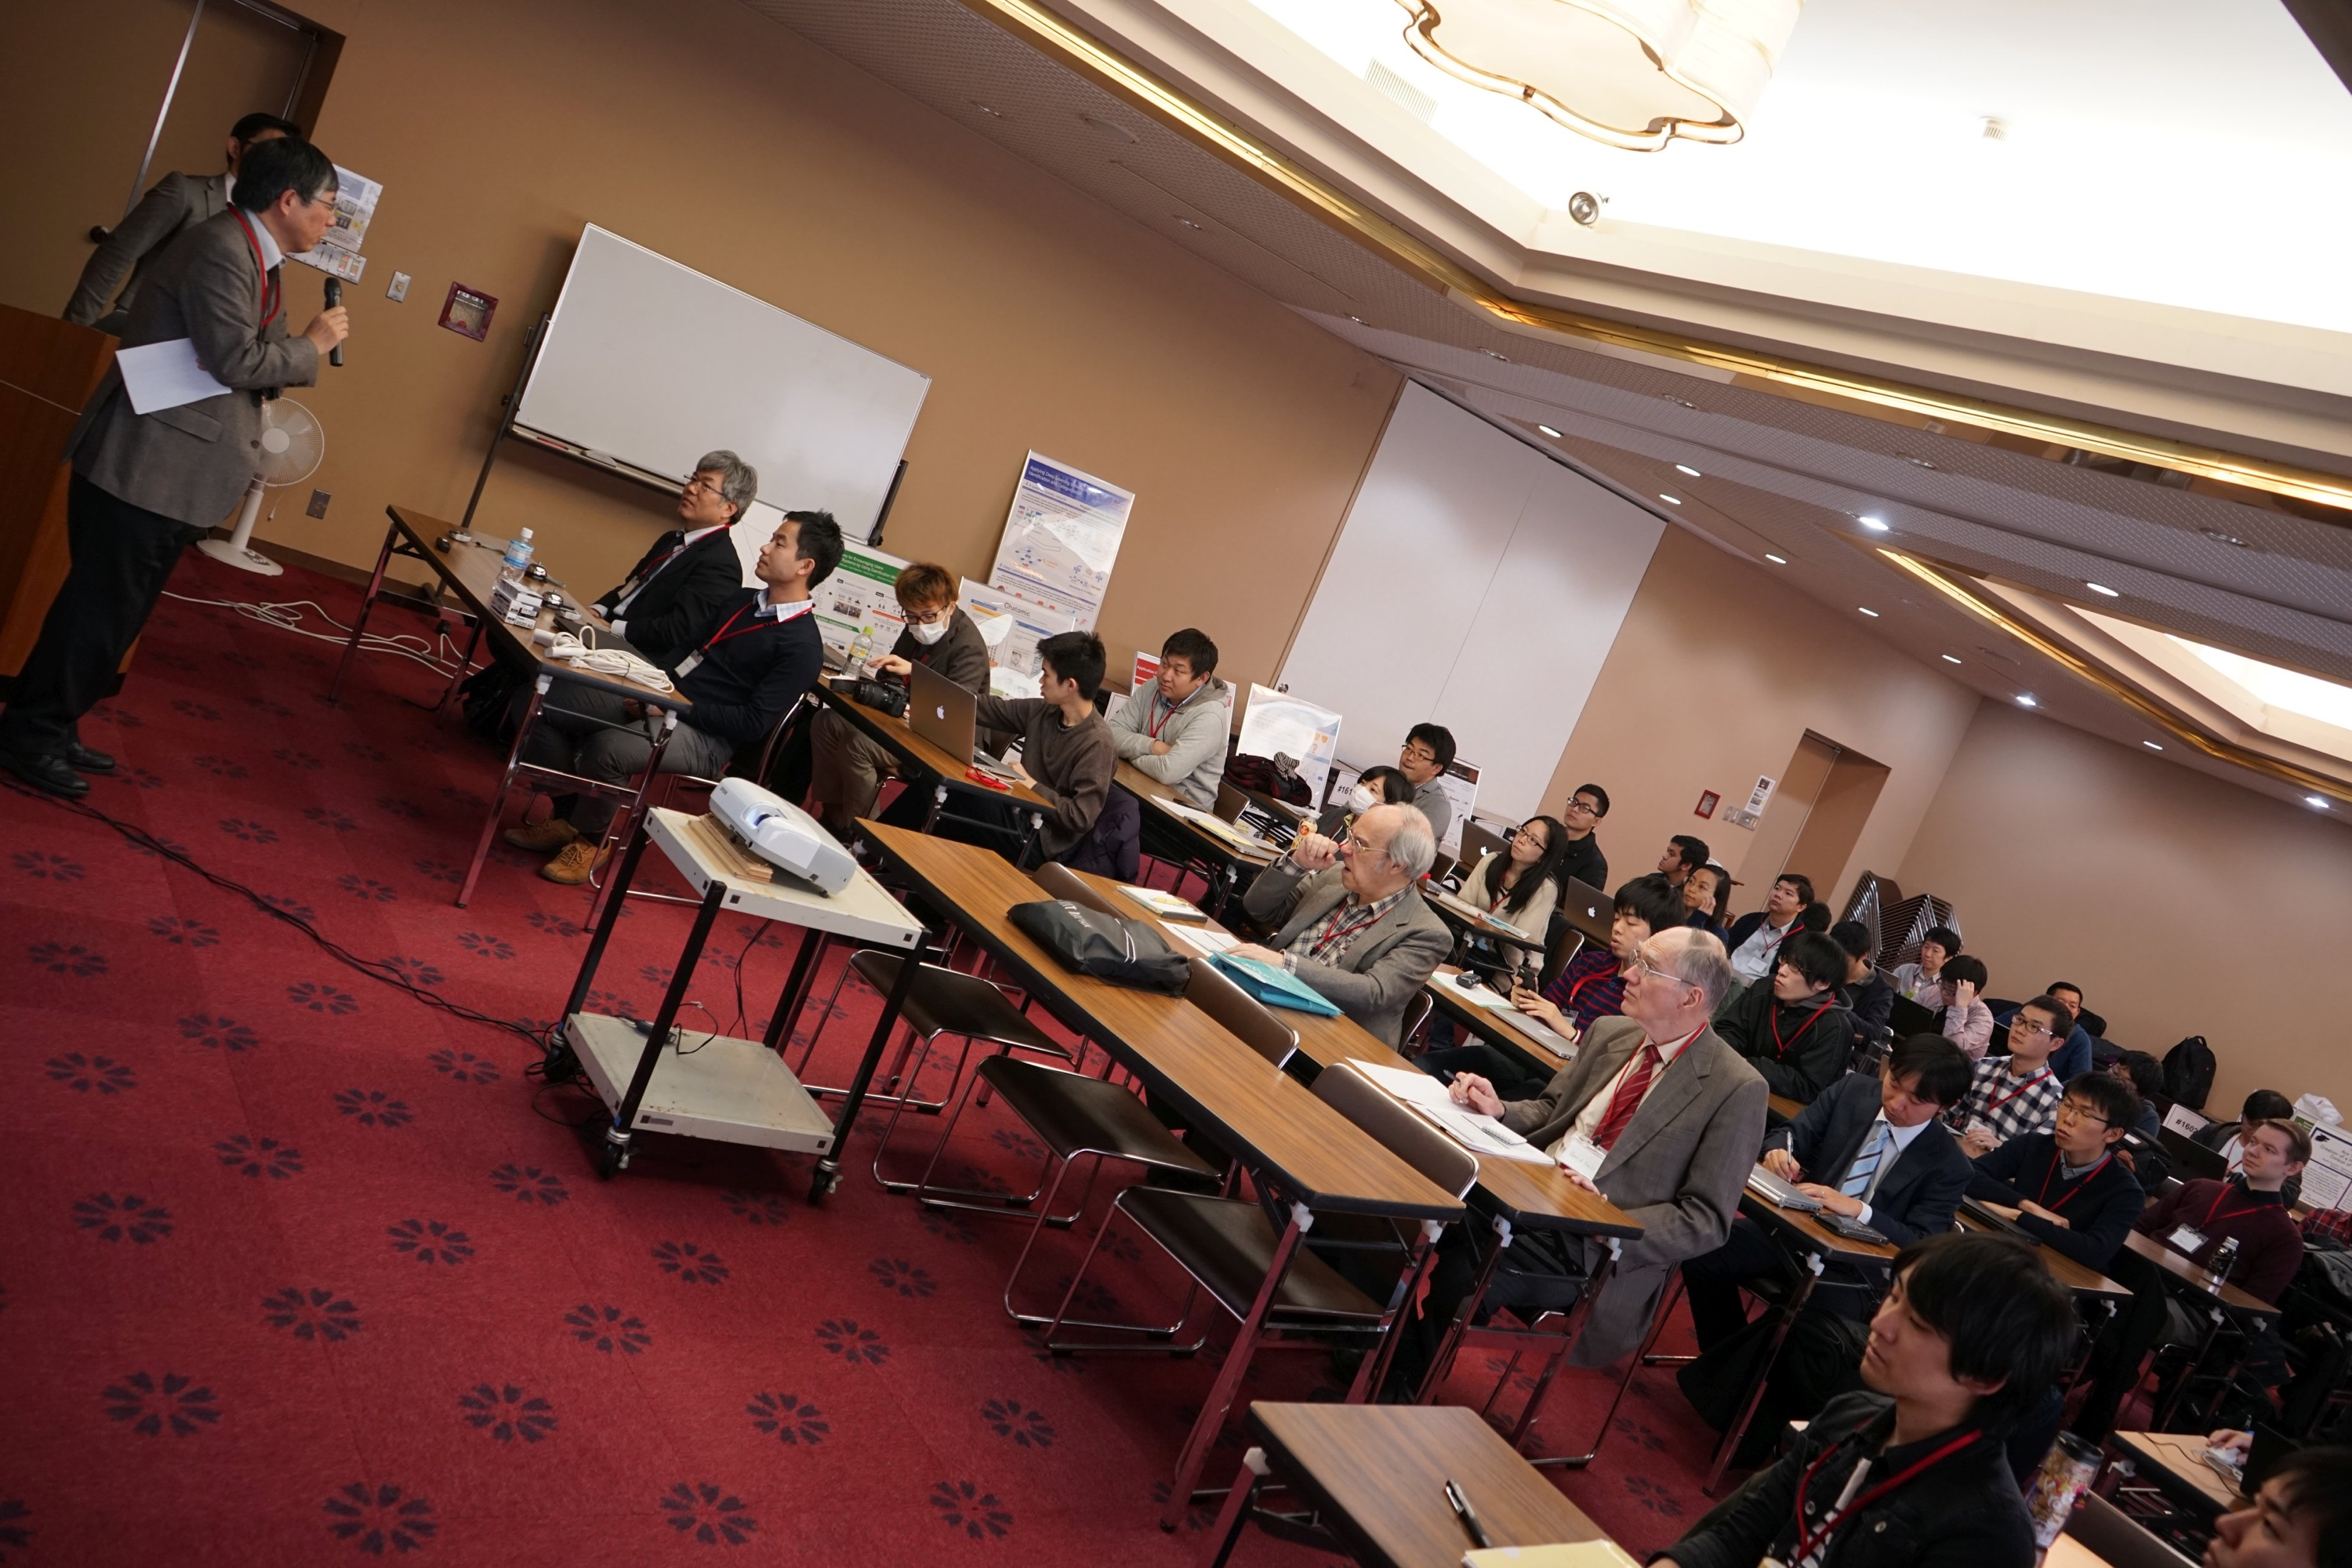 The conference room at the Boscovilla in Nara.